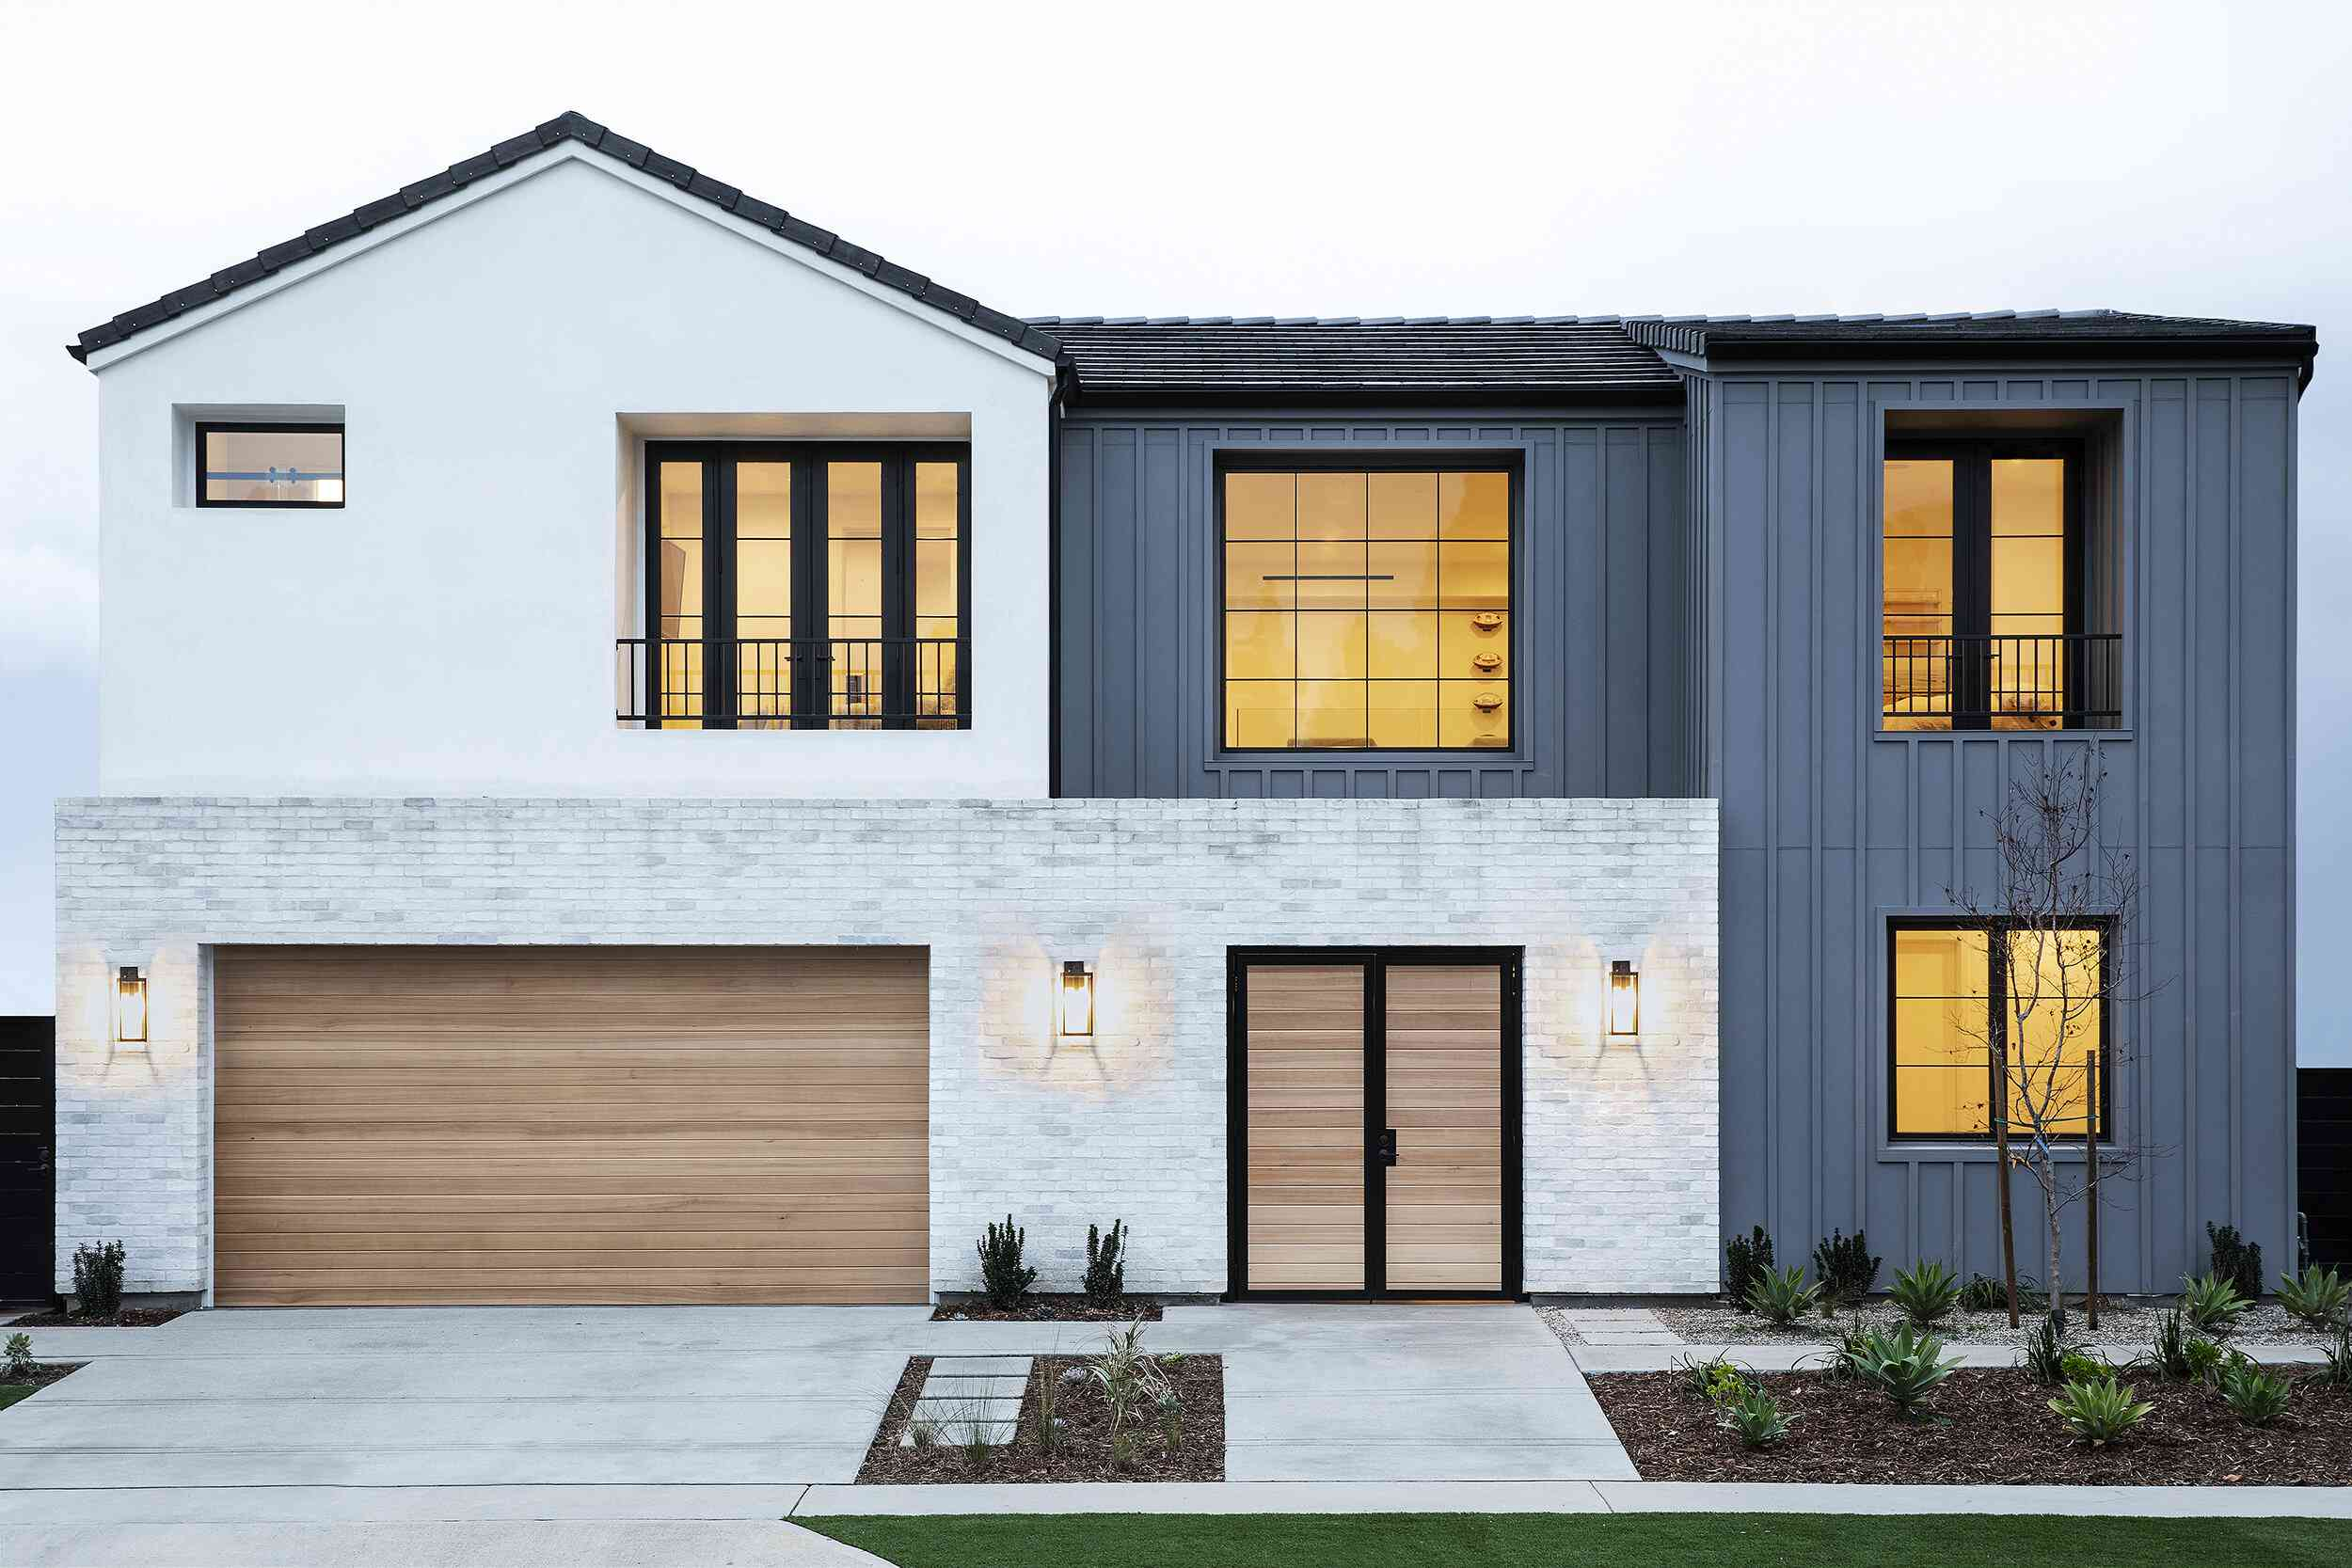 house with white brick and blue exterior, wooden garage door